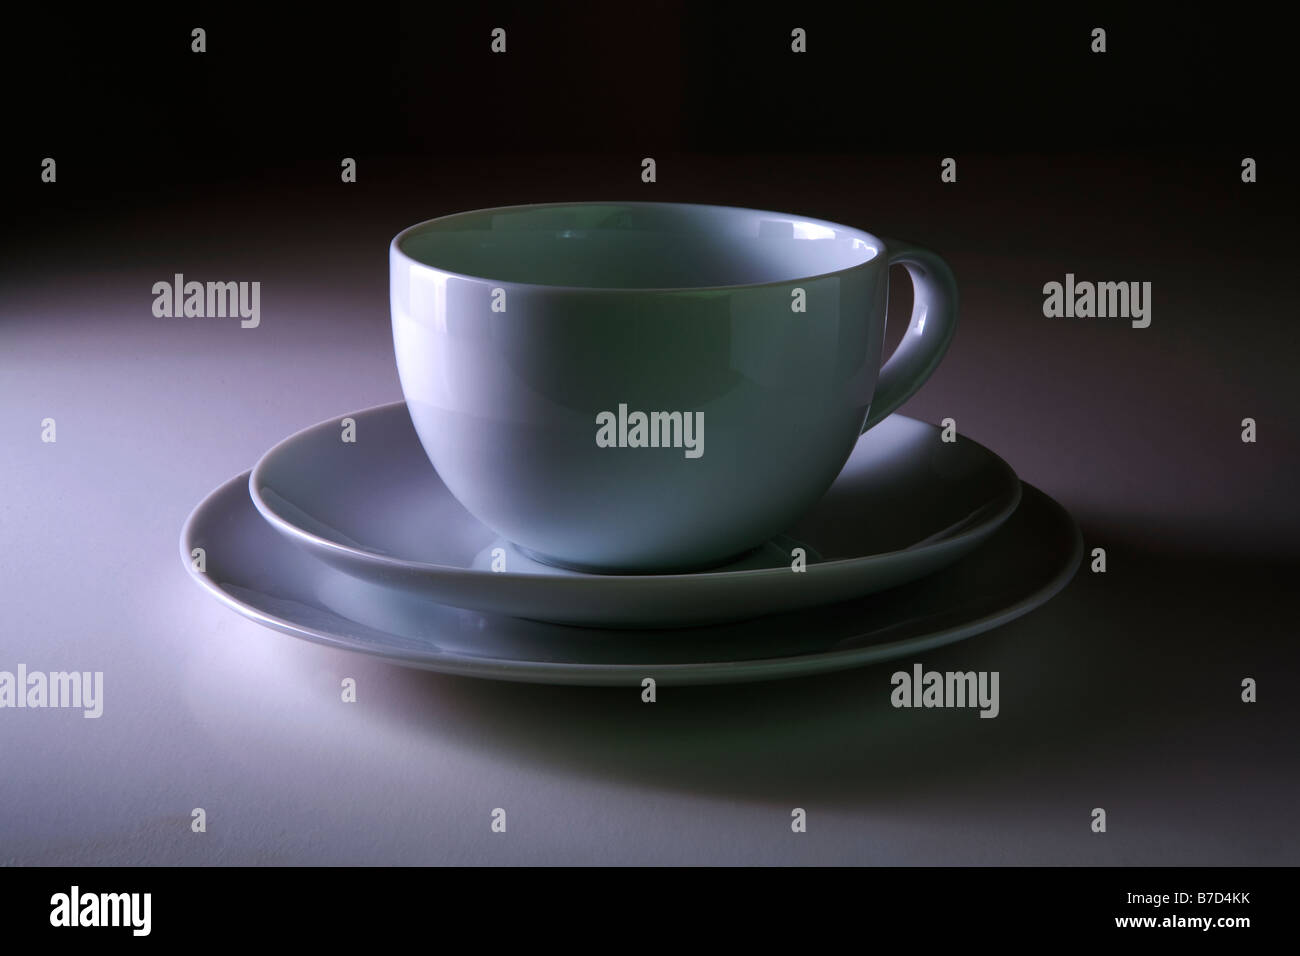 cup saucer side plate white crockery - Stock Image